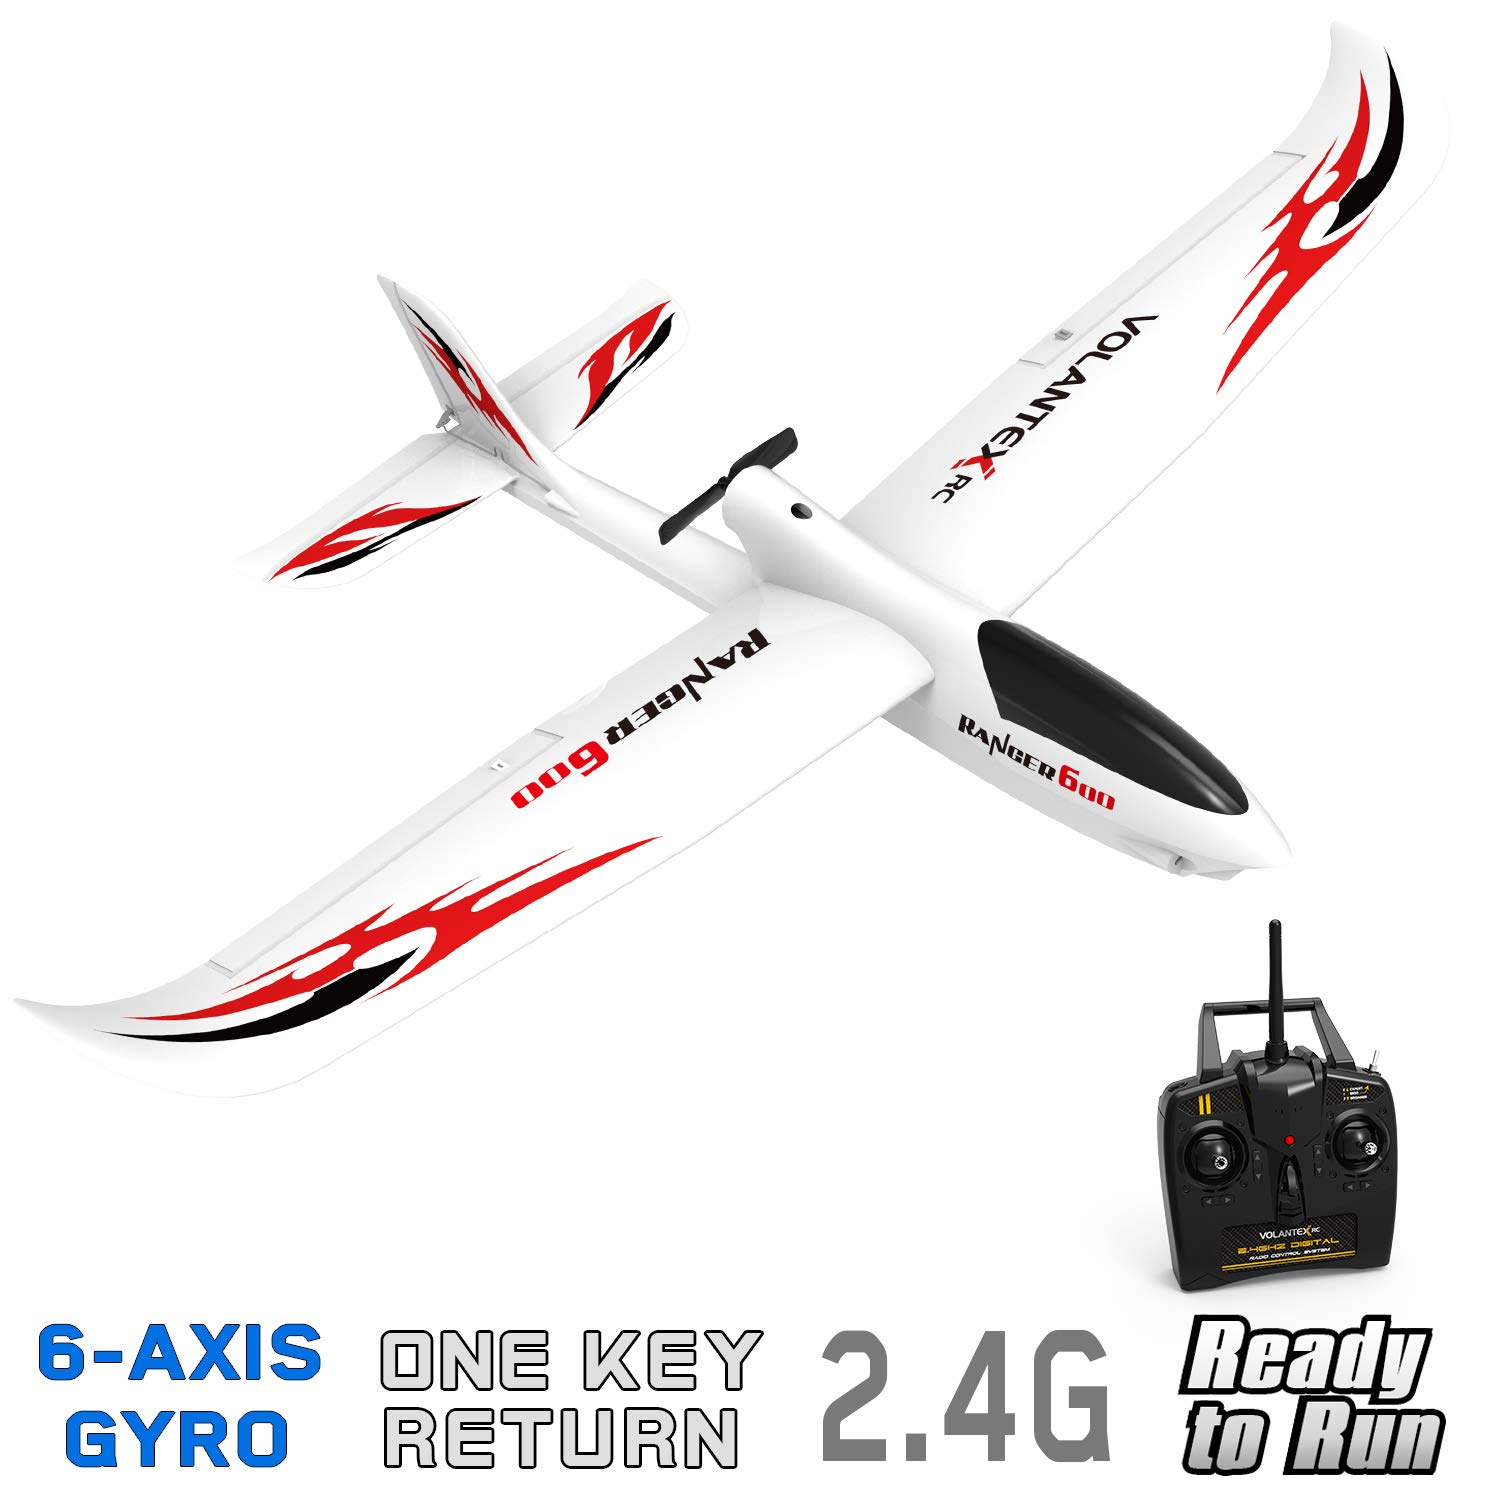 VOLANTEXRC RC Glider Plane Remote Control Airplane Ranger600 Ready to Fly, 2.4GHz Radio Control Aircraft